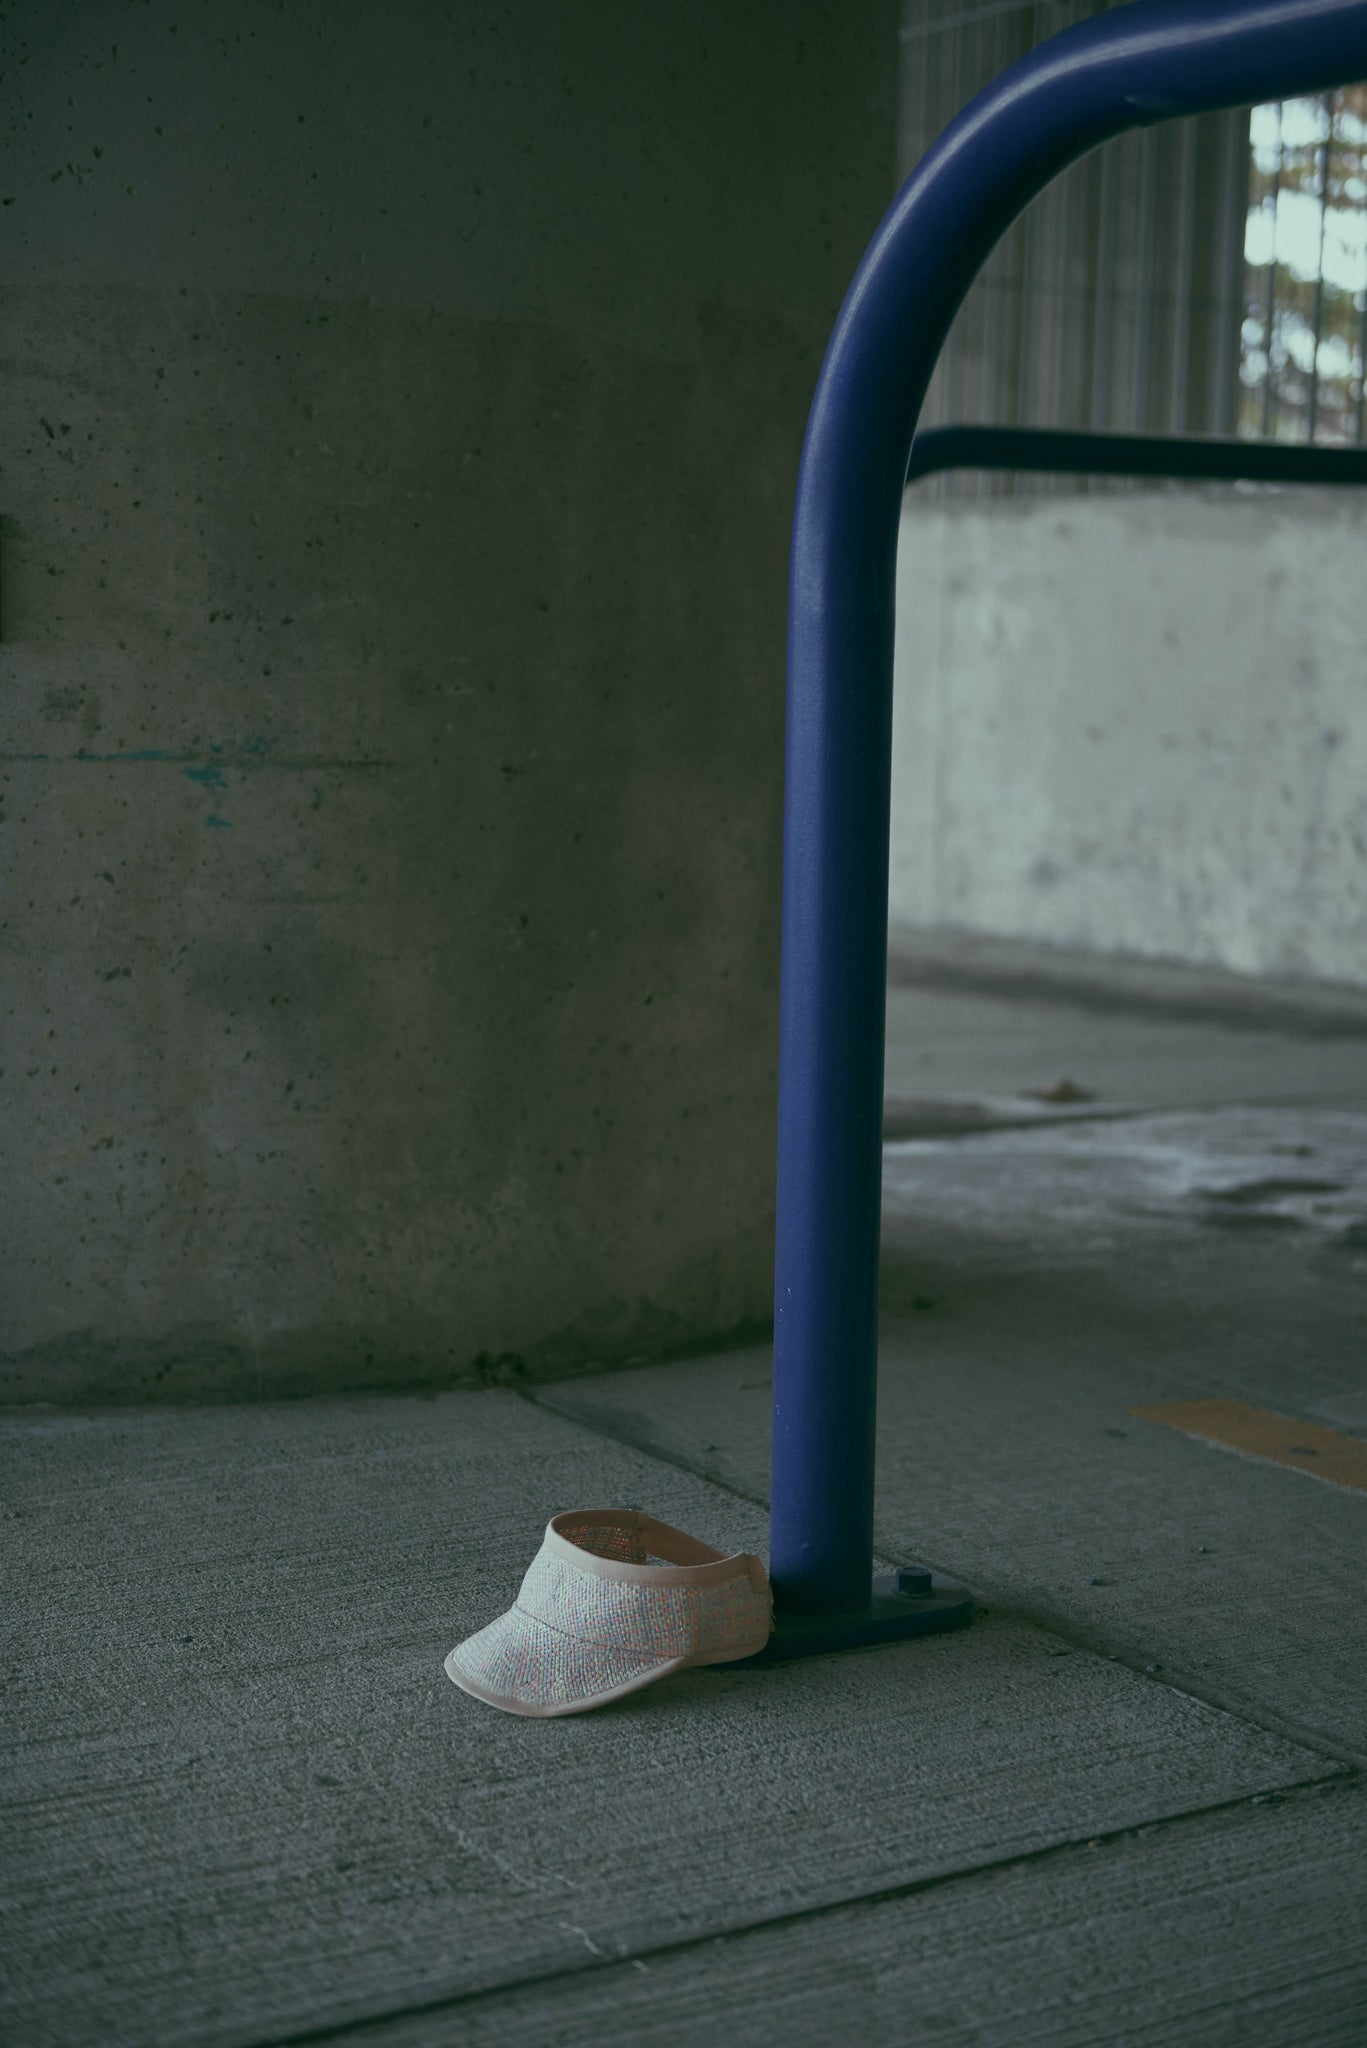 The street photo shows the Marion pastel straw visor on the floor.